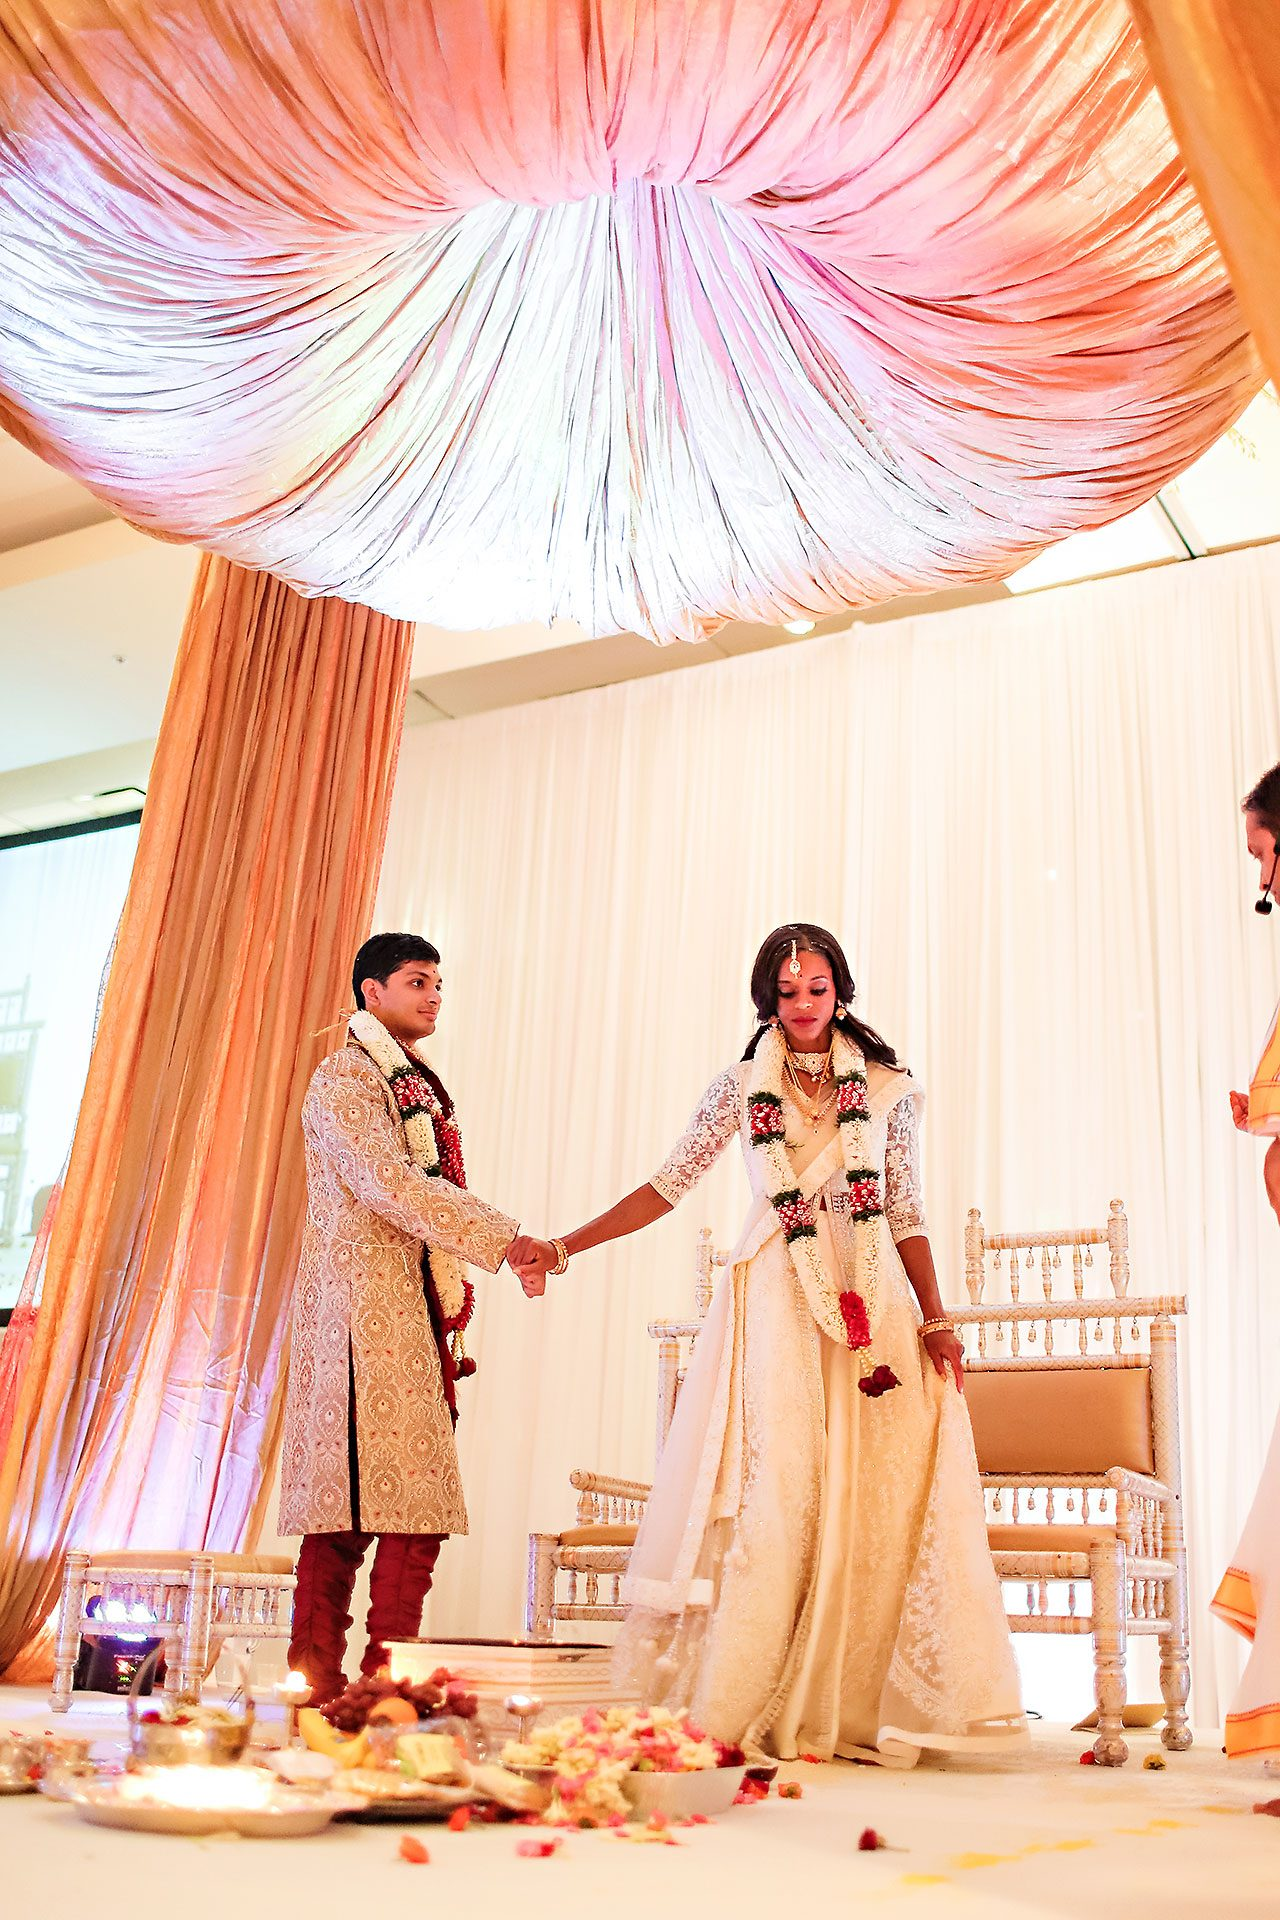 Joie Nikhil JW Marriott Indian Wedding 295